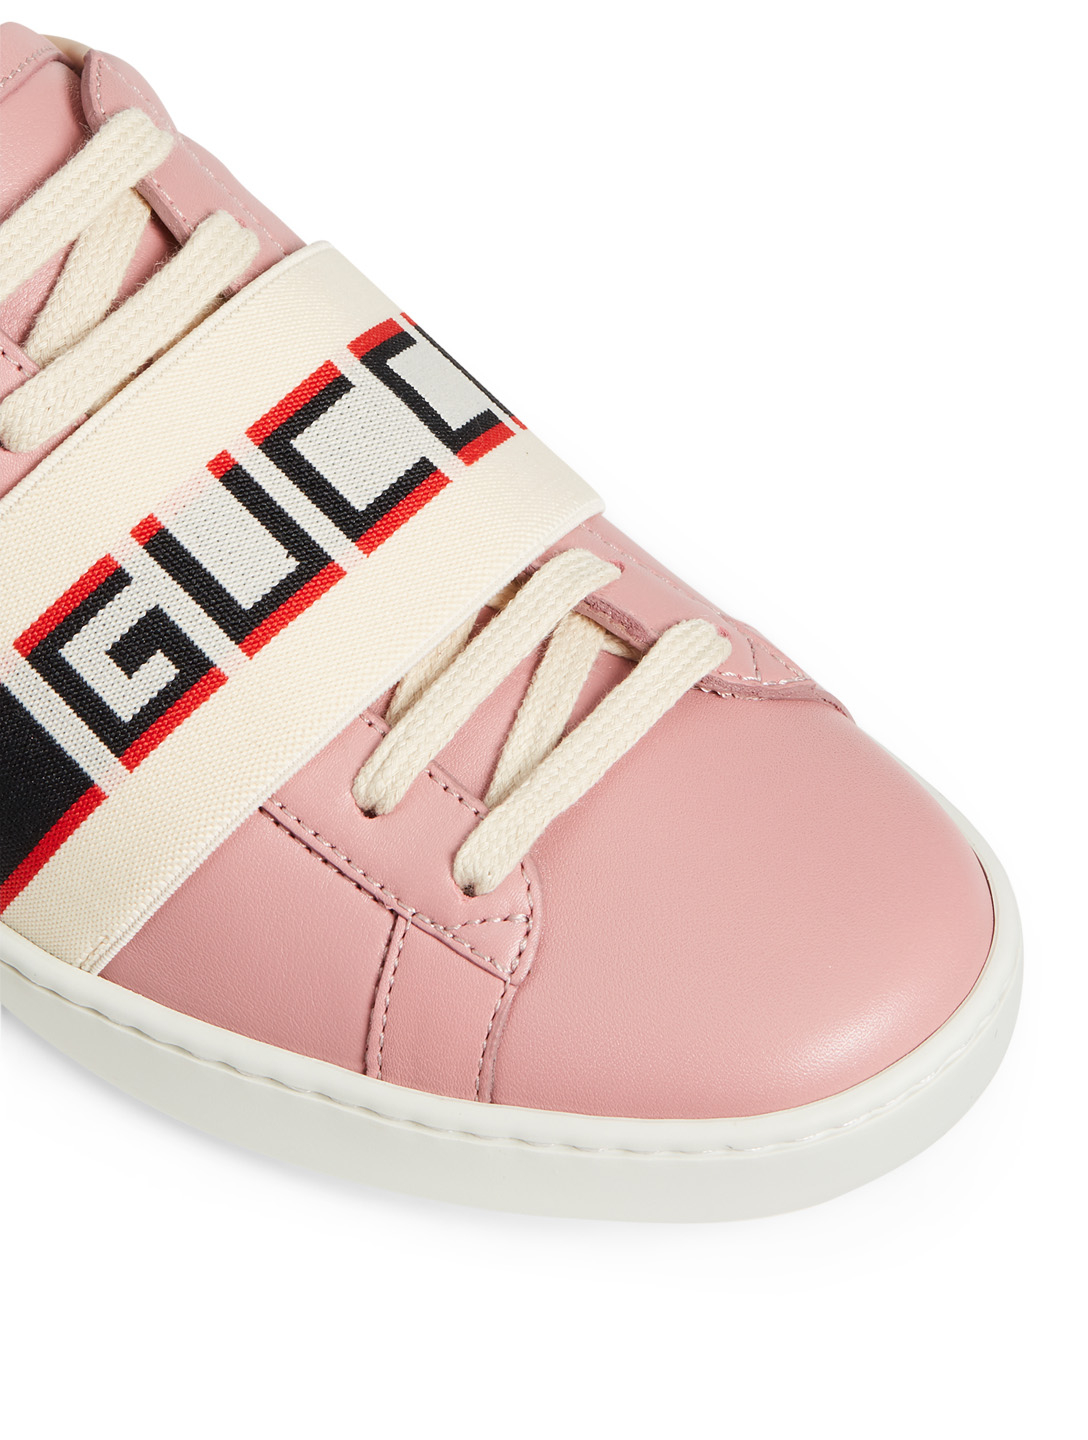 fe83a4797d5 ... GUCCI New Ace Leather Sneakers With Logo Strap Women s Pink